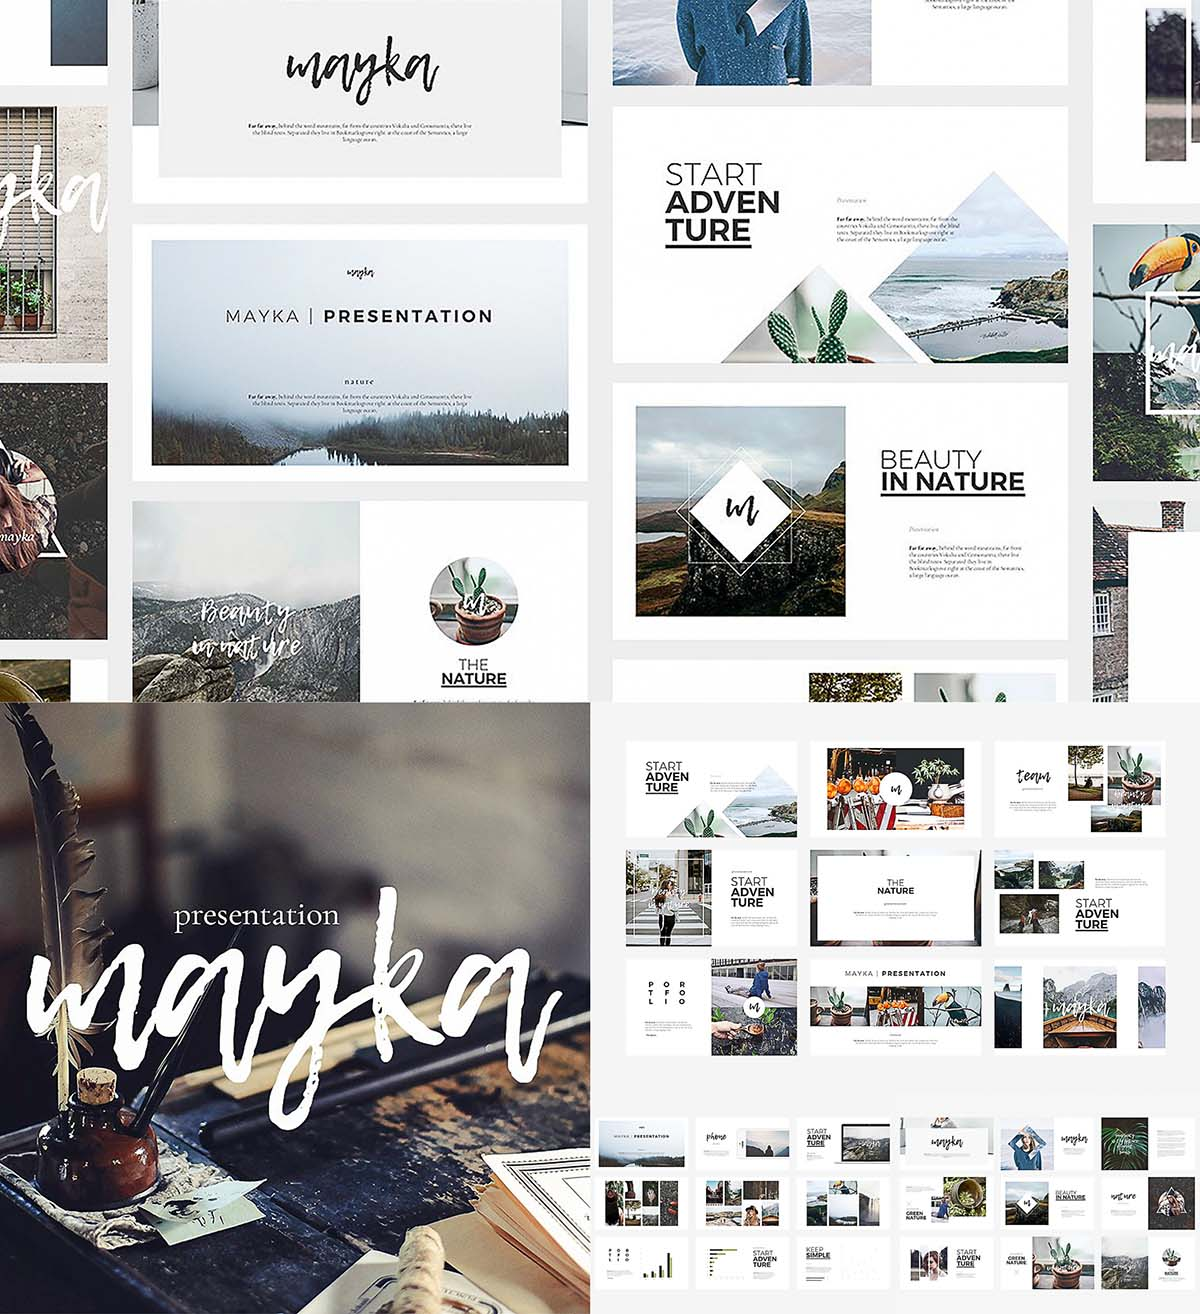 Mayka powerpoint template free download mayka powerpoint template toneelgroepblik Images